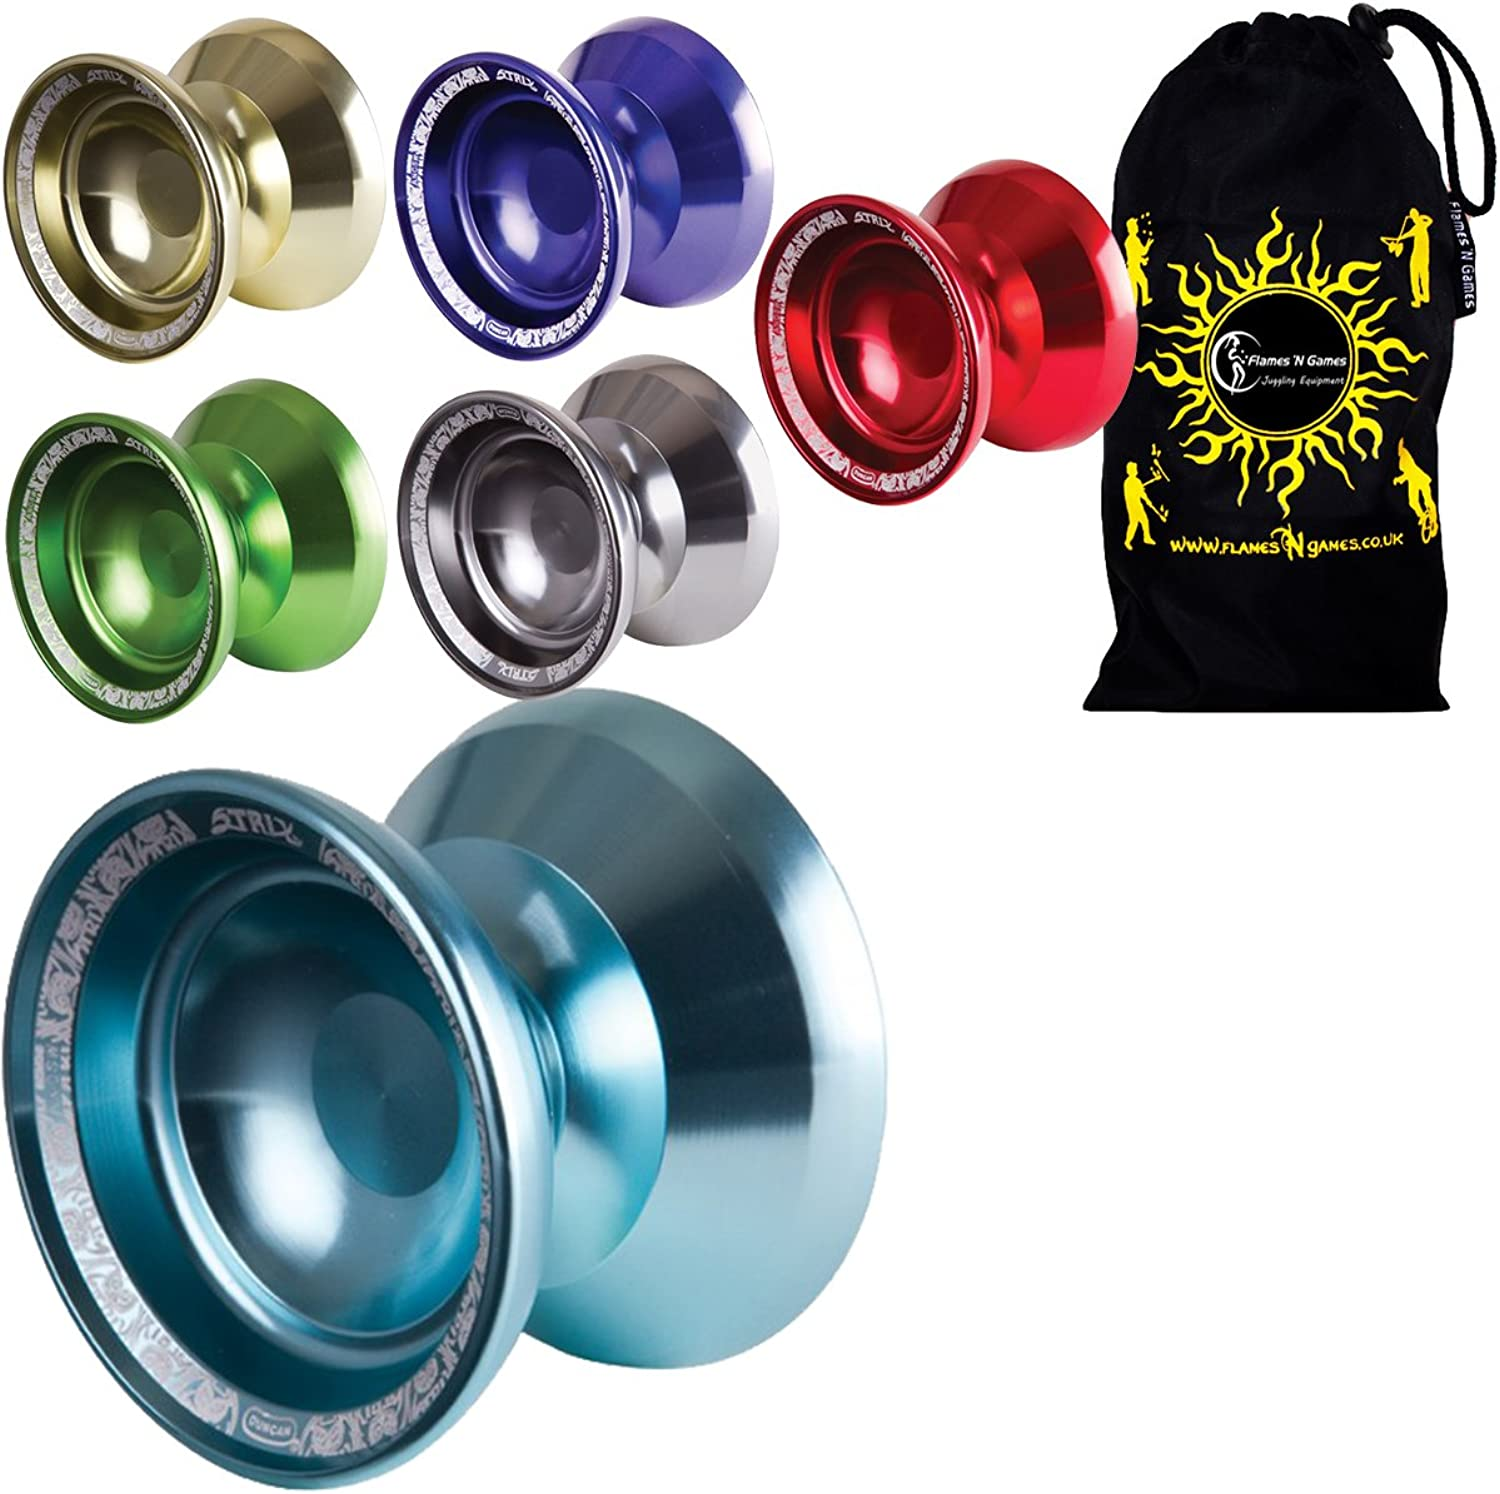 Duncan Strix Medium Advanced Double Competition Model Yoyo  Supreme Quality Aluminium Medium Yo Yo For 1A 3A Tricks + Travel Bag  Ideal YoYo for Competitions Off All Ages (gold)